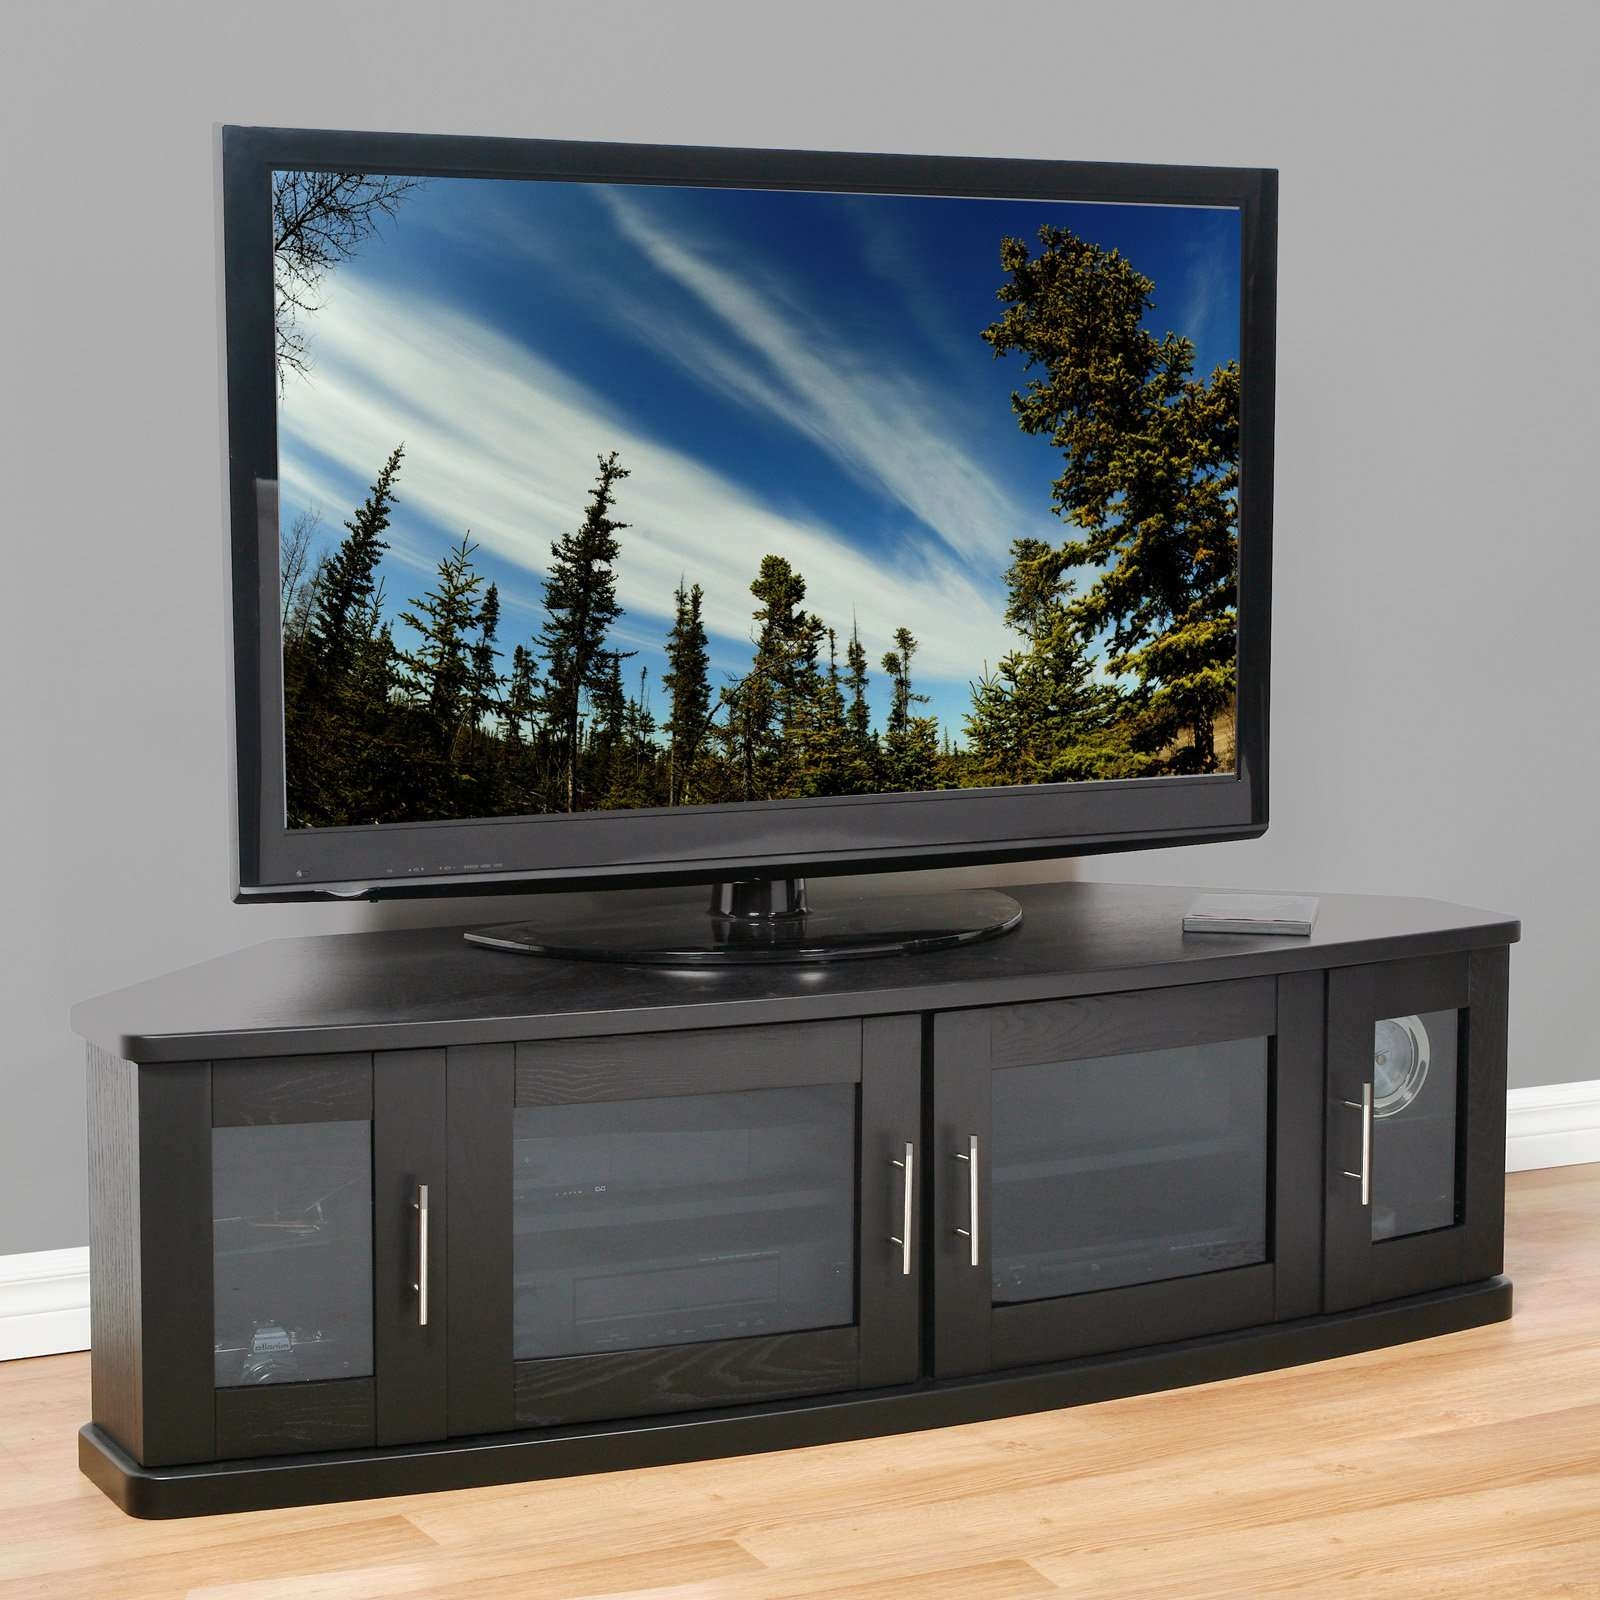 Plateau Newport 62 Inch Corner Tv Stand In Black – Walmart Pertaining To Modern Tv Stands For 60 Inch Tvs (View 15 of 15)